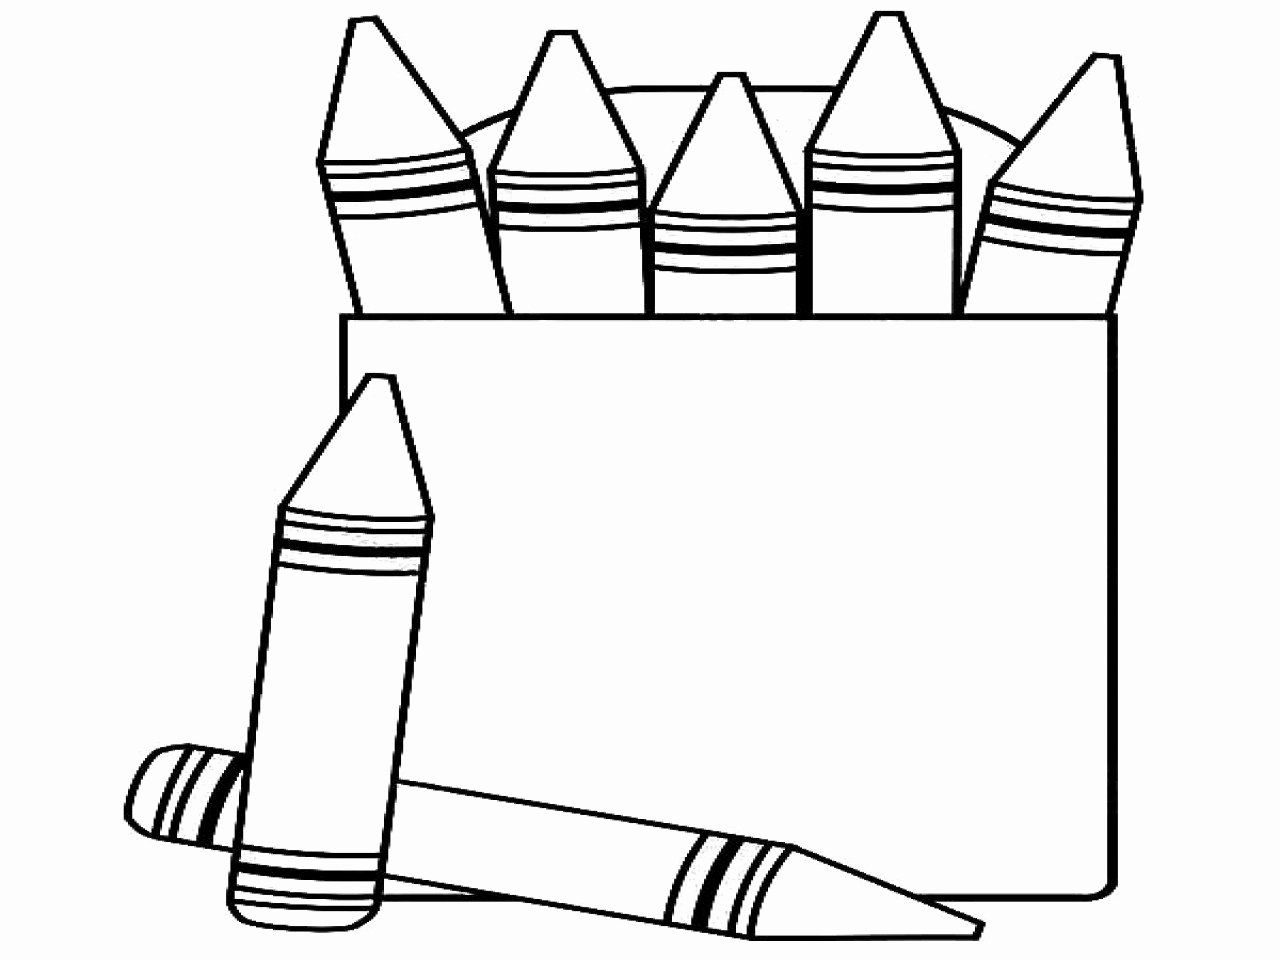 Crayon Coloring Pages Printable Unique Coloring Pages And Books Crayonoring Page Crayola Template Crayon Box Cute Coloring Pages Coloring Pages